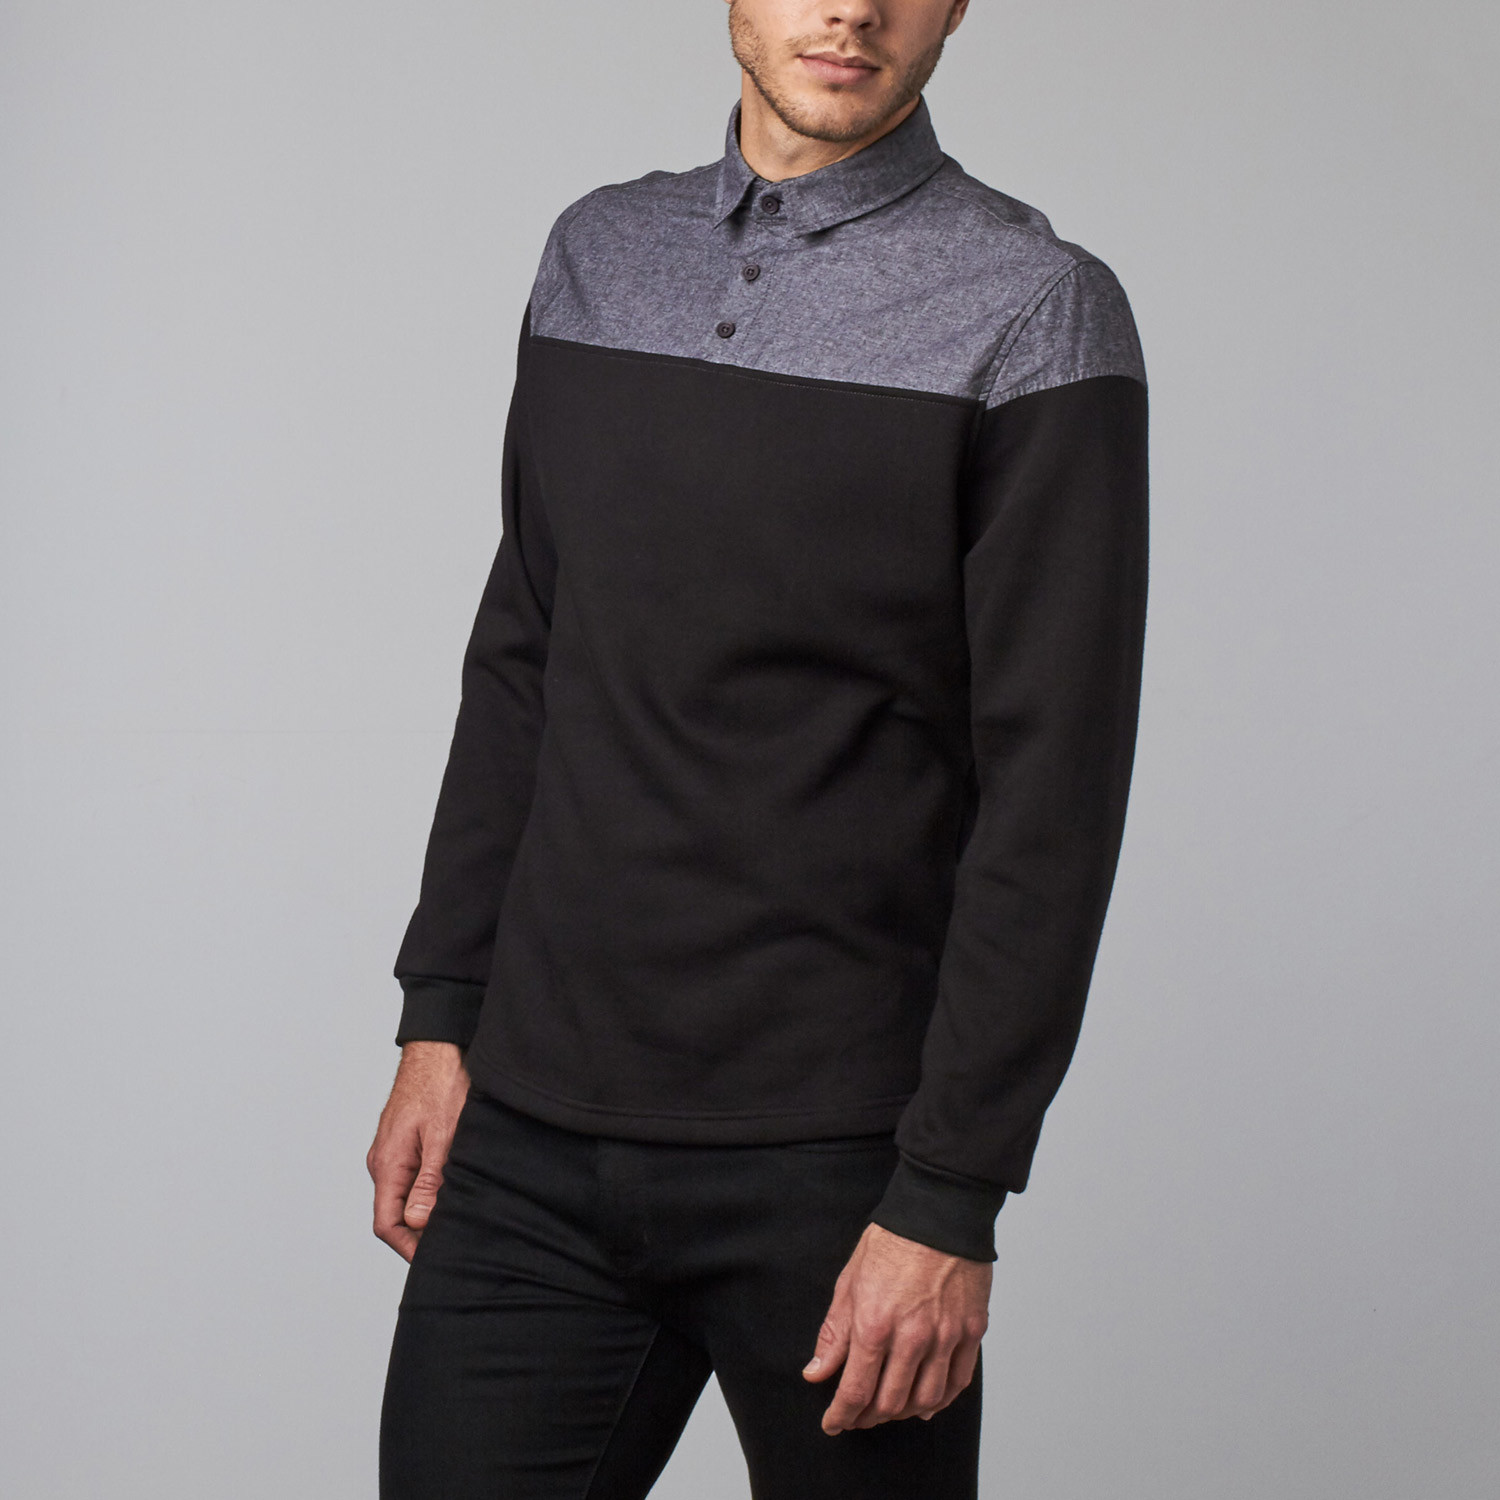 Sever sweater black chambray s cohesive co for Chambray 7 s